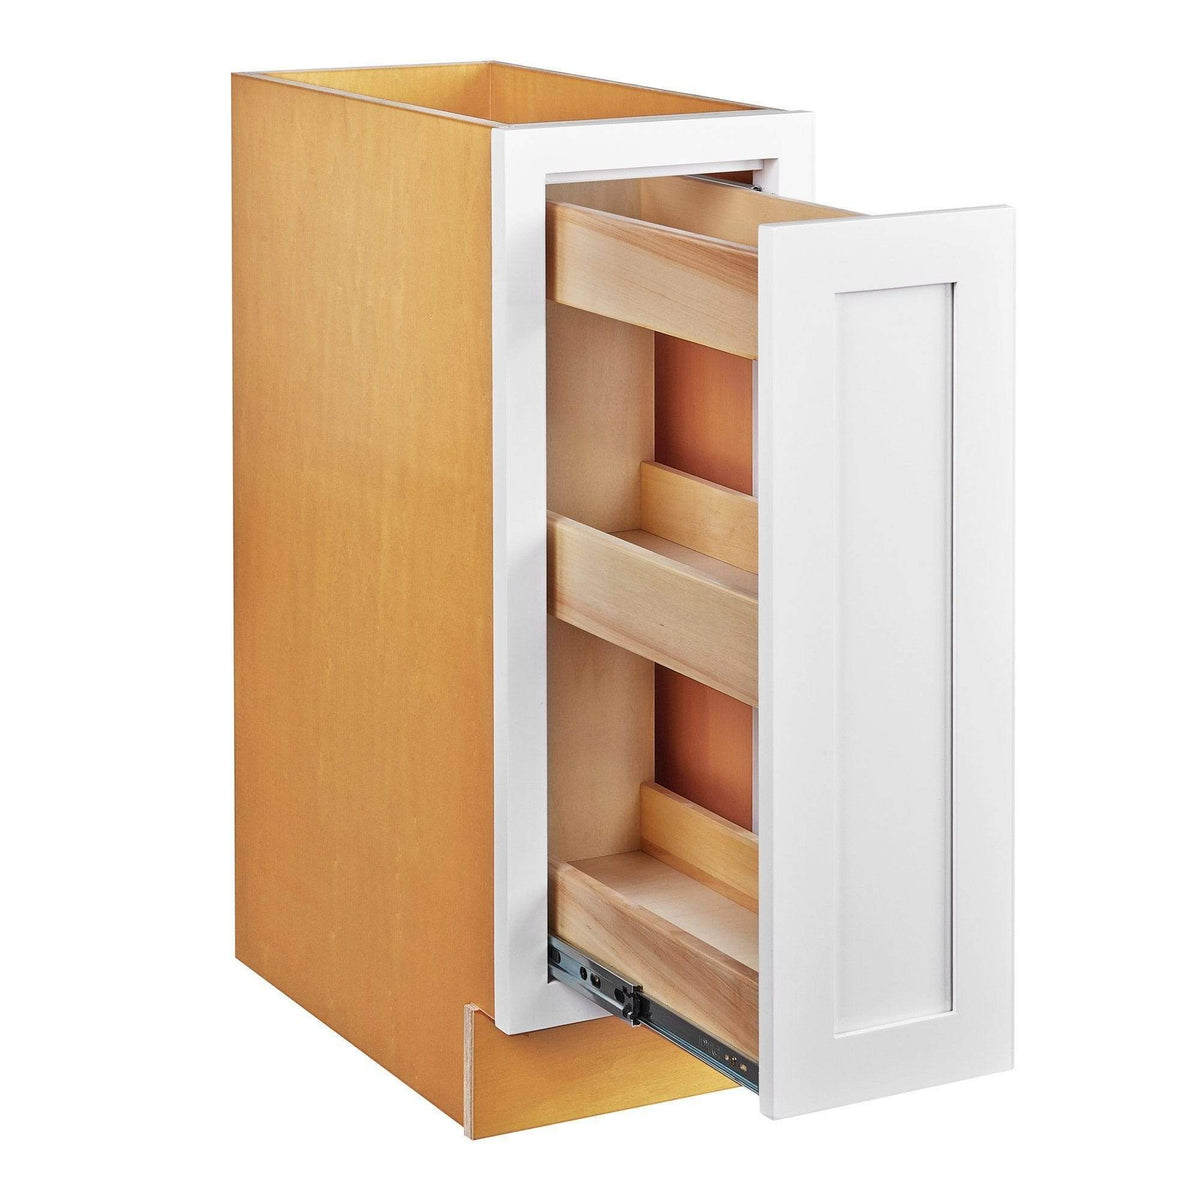 "Base Cabinet Snow White Inset Shaker Spice Rack Pull Out Base Cabinet 9"" & 12"" Inset Kitchen Cabinets"